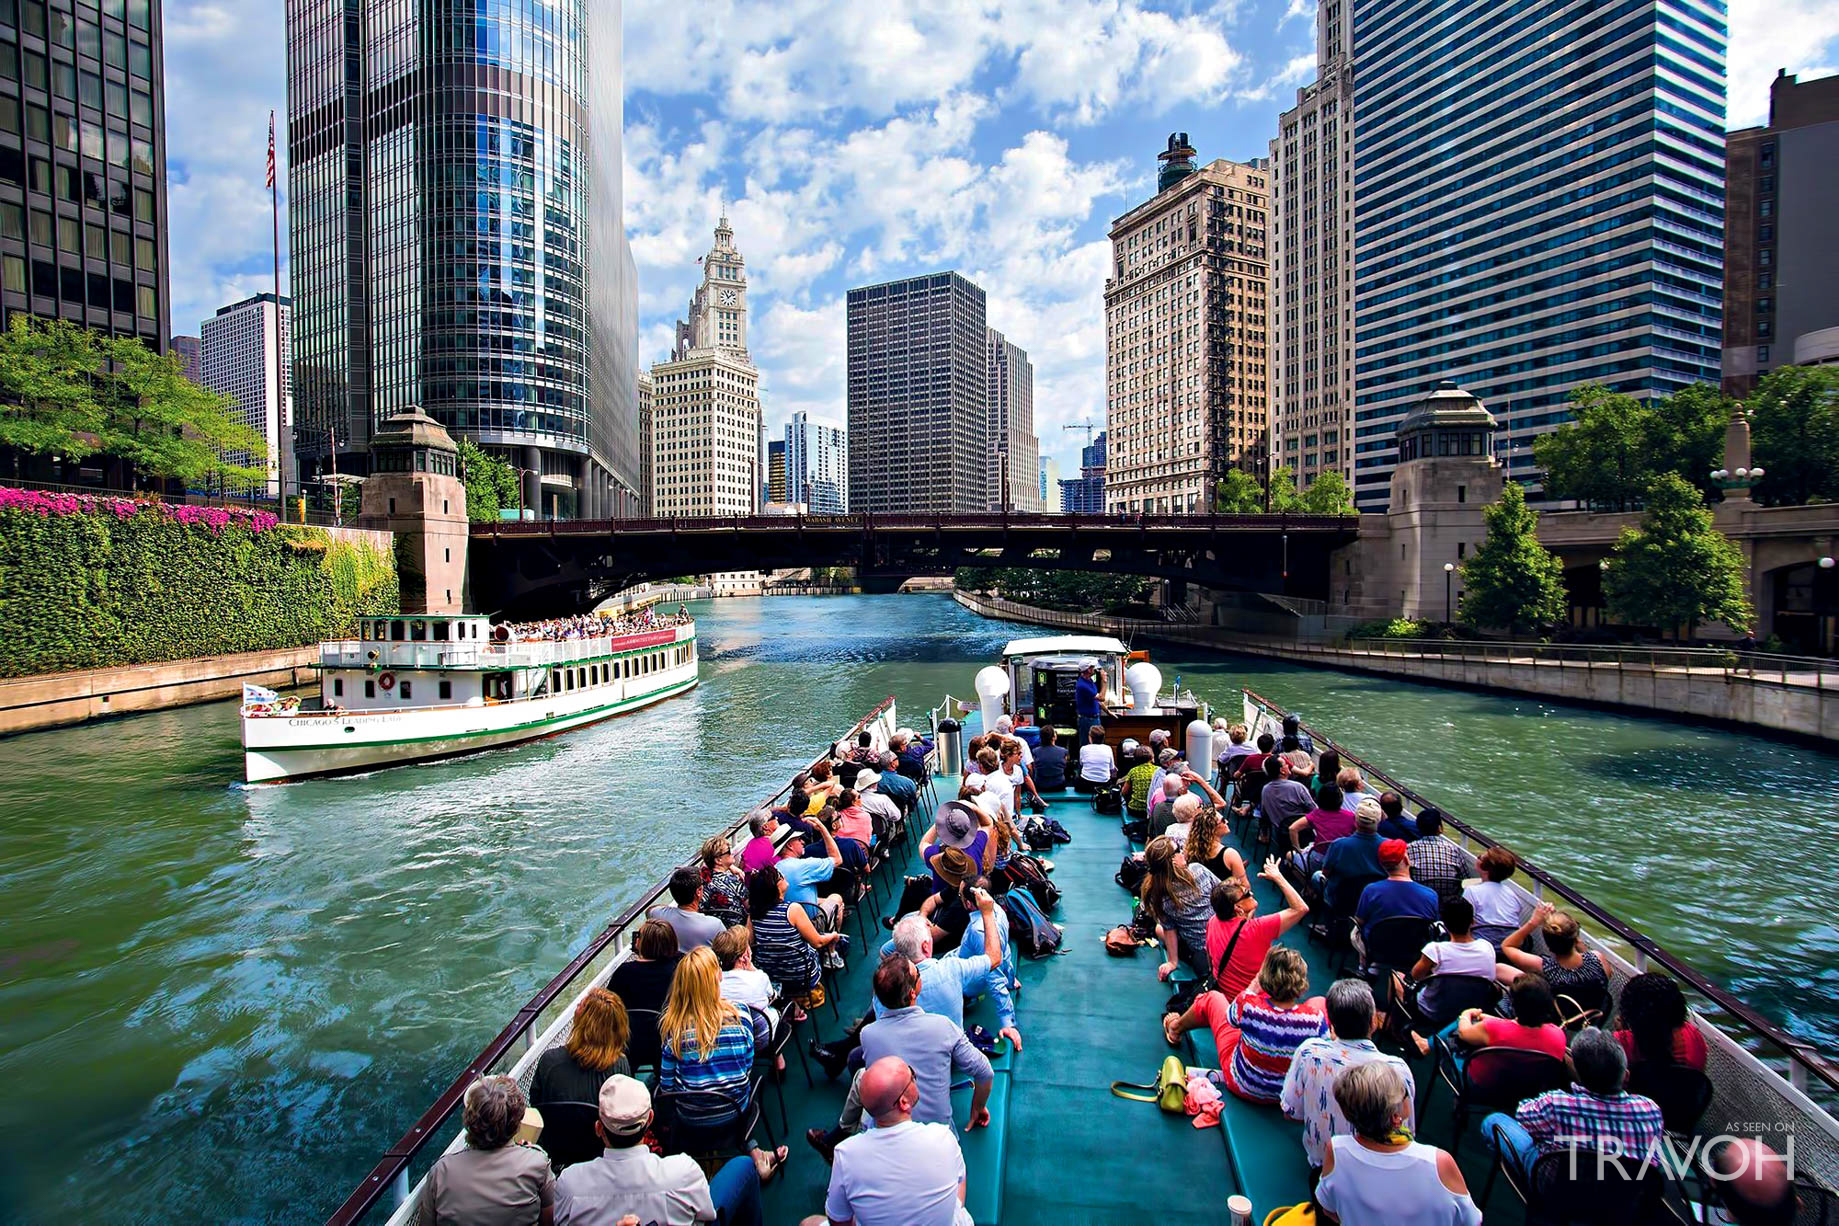 Take a Cruise on the Chicago River - Chicago, IL, USA